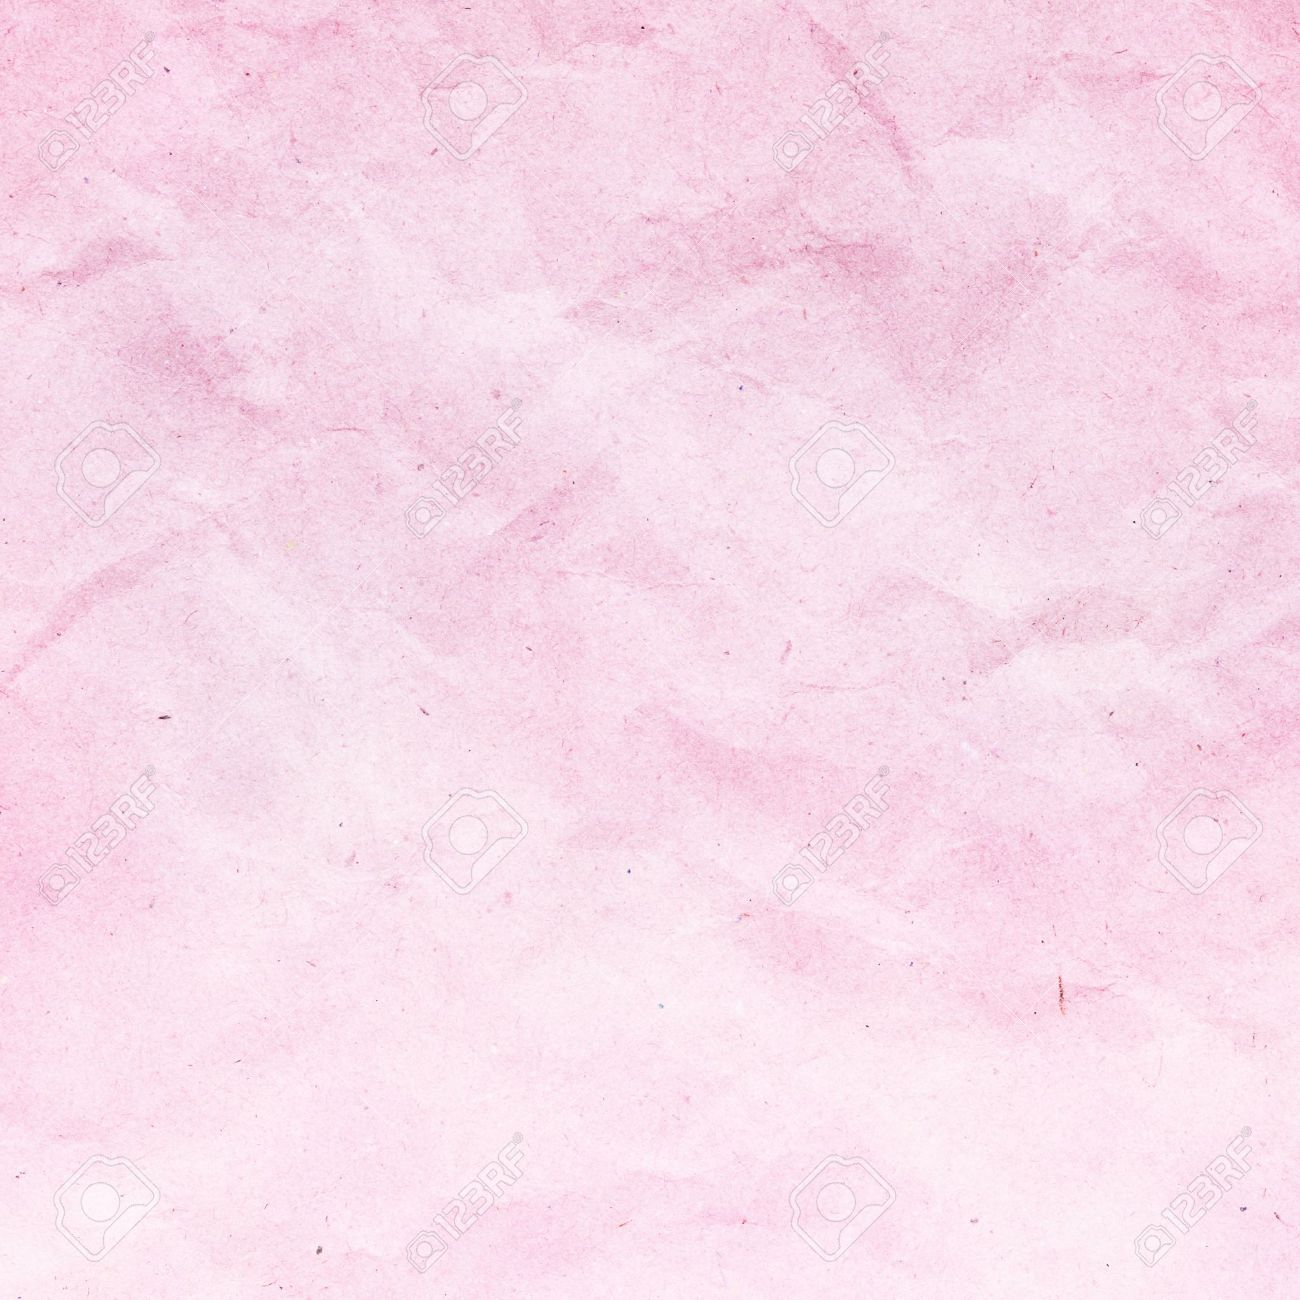 Pink Paper Background Stock Photo, Picture And Royalty Free Image ...